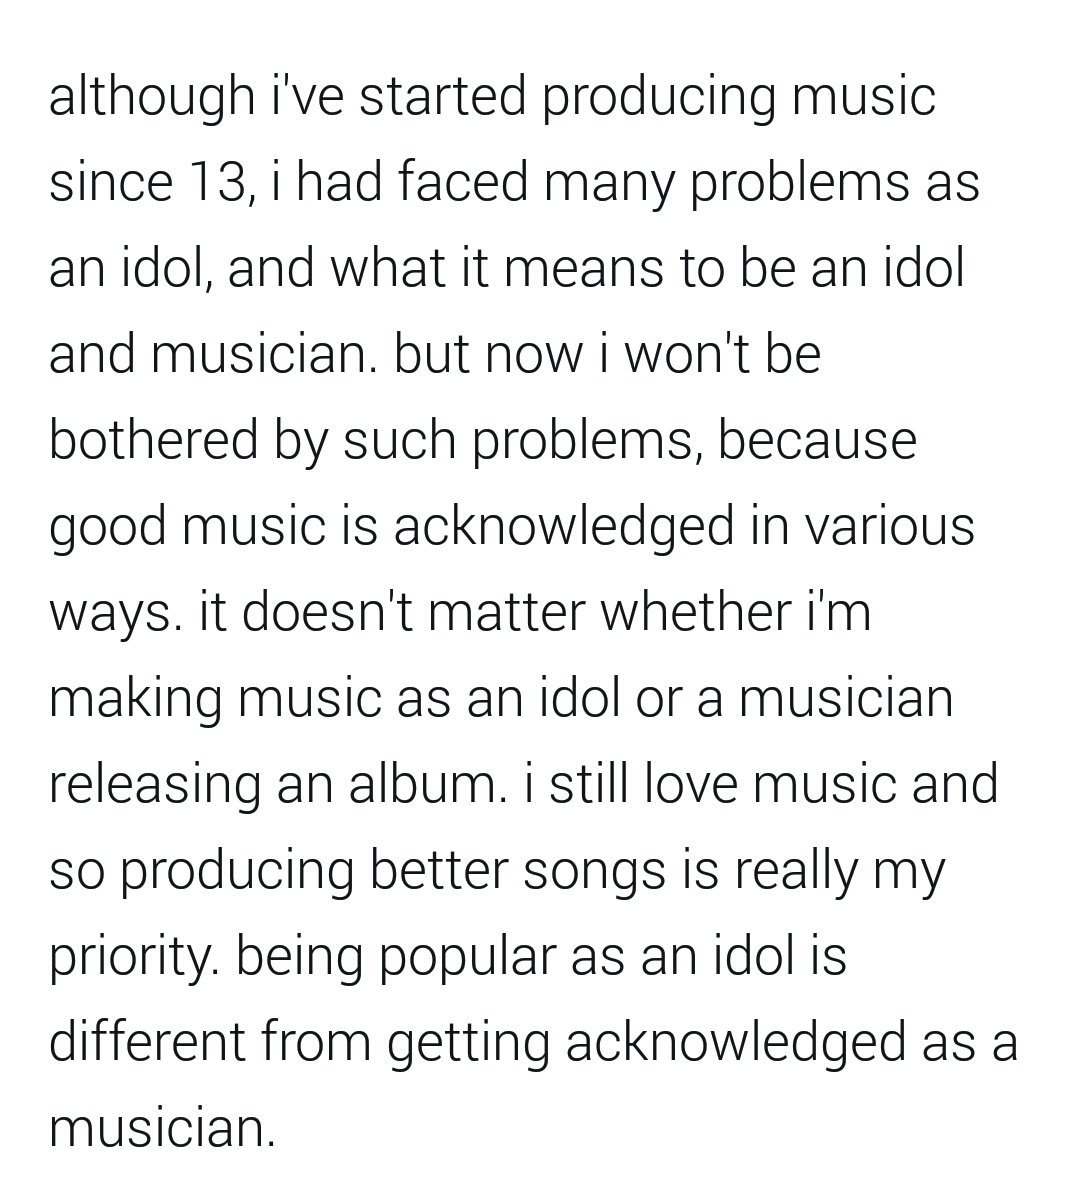 acknowledgement about music